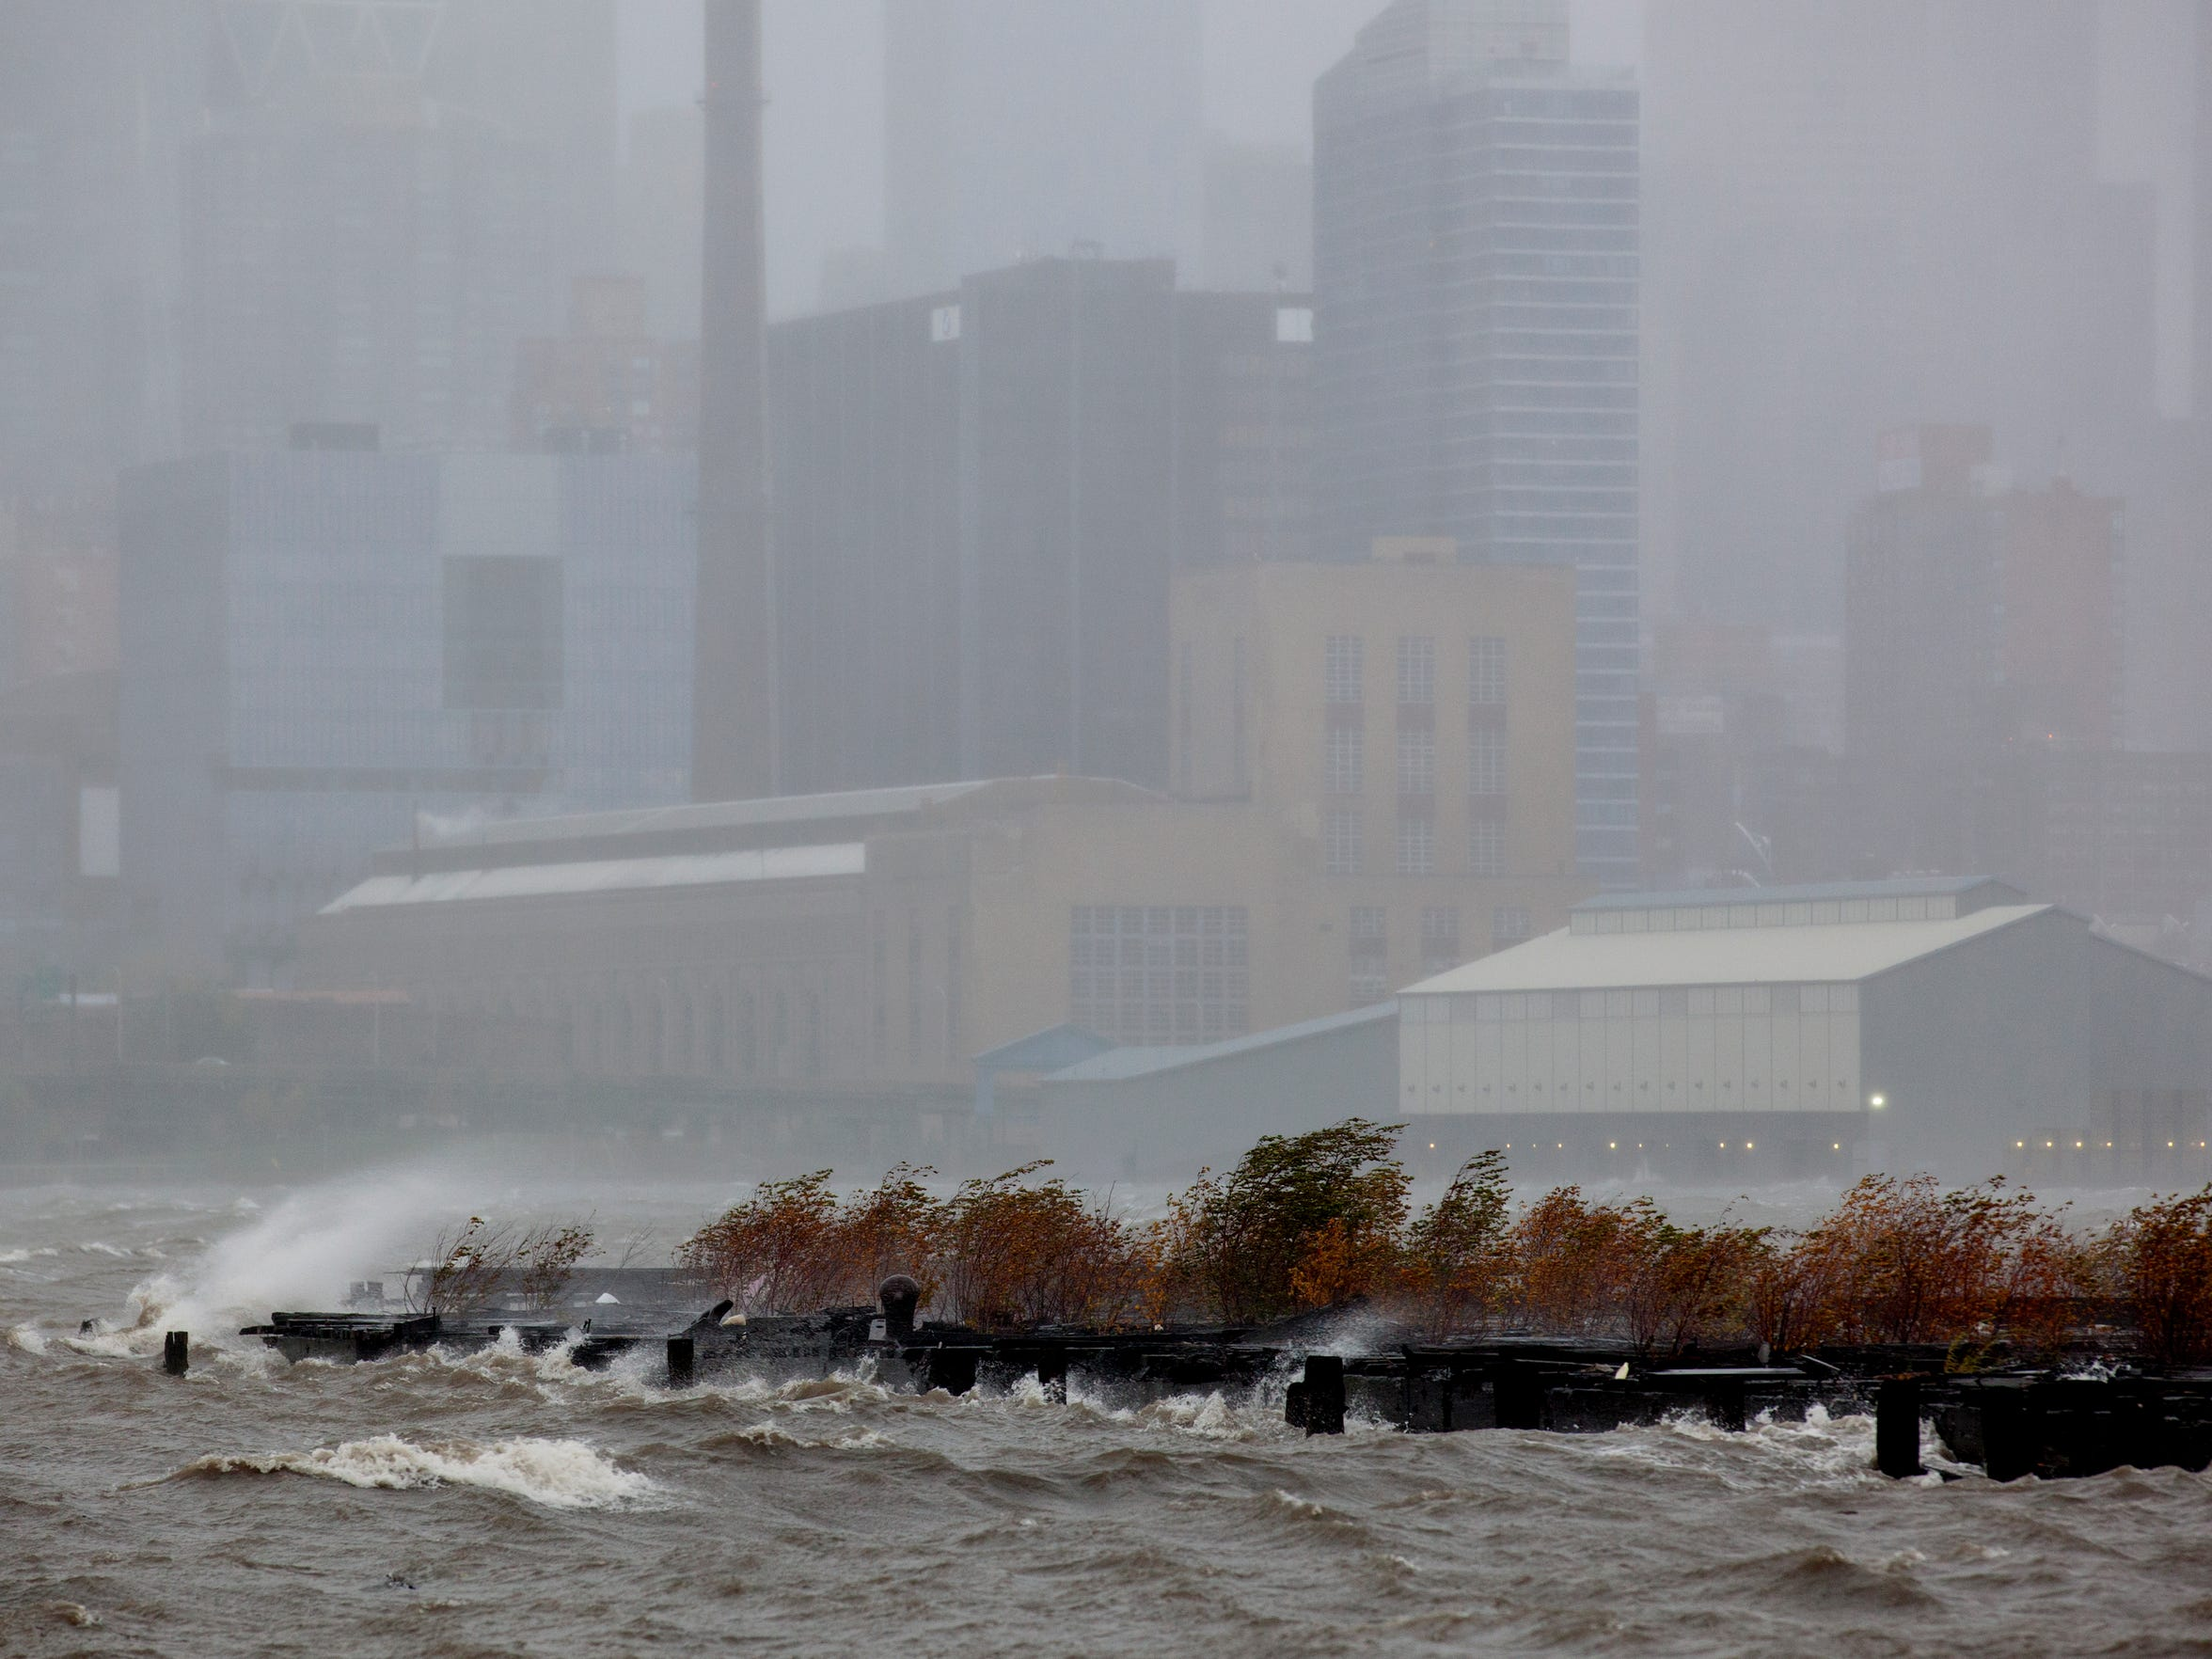 Wind-blown mist from the Hudson River, along with driving